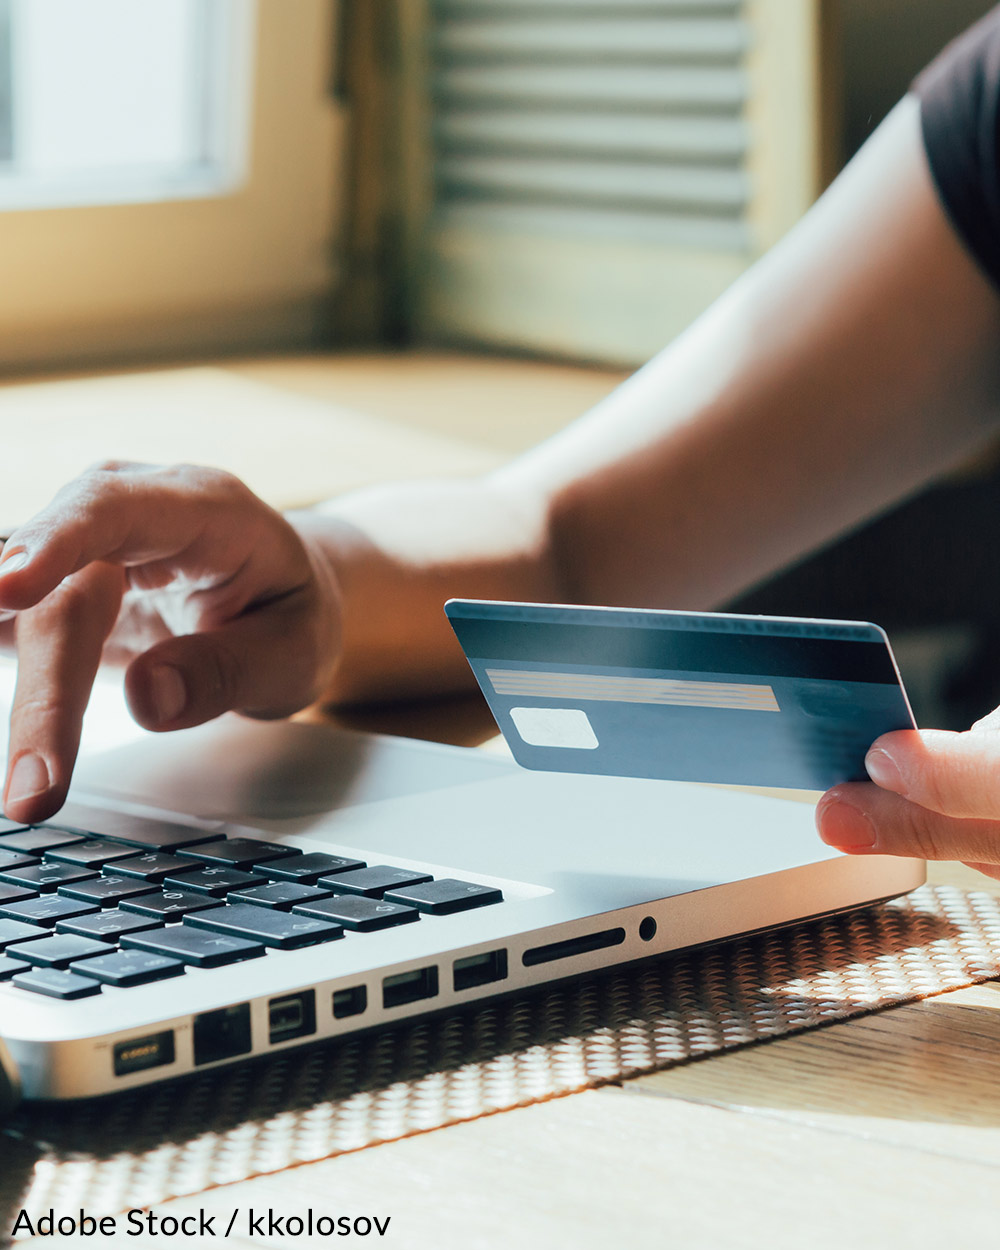 Credit card transaction fees take a portion of charitable donations.